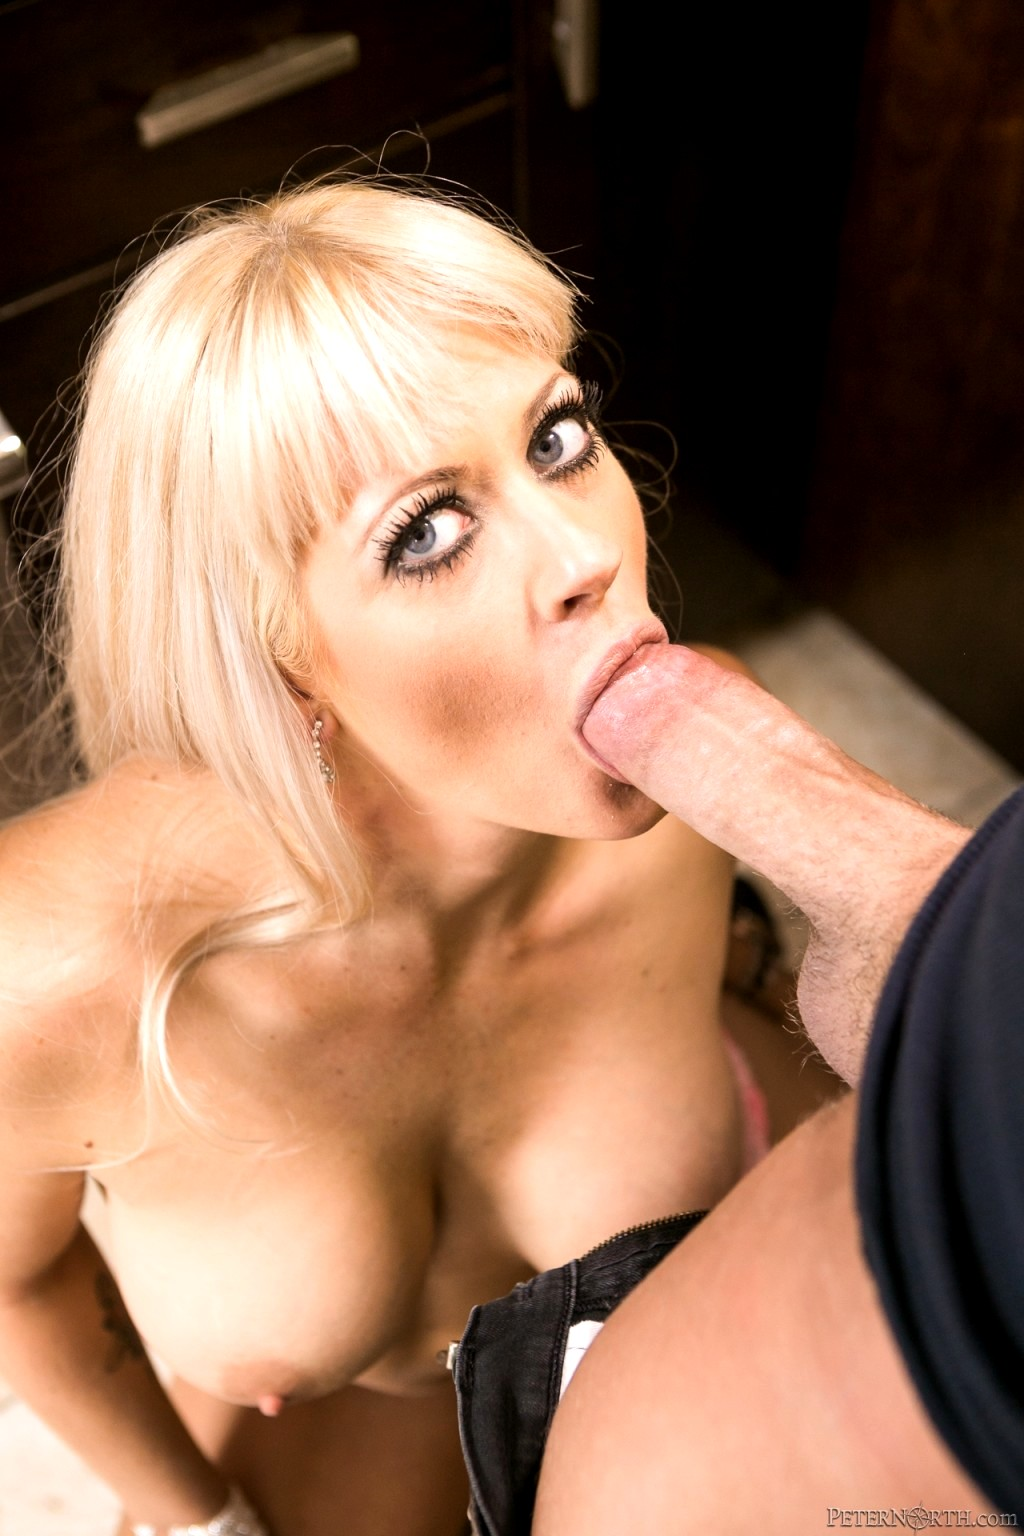 You cum on karla kush039s pussy in singapore virtual vacation - 3 part 4